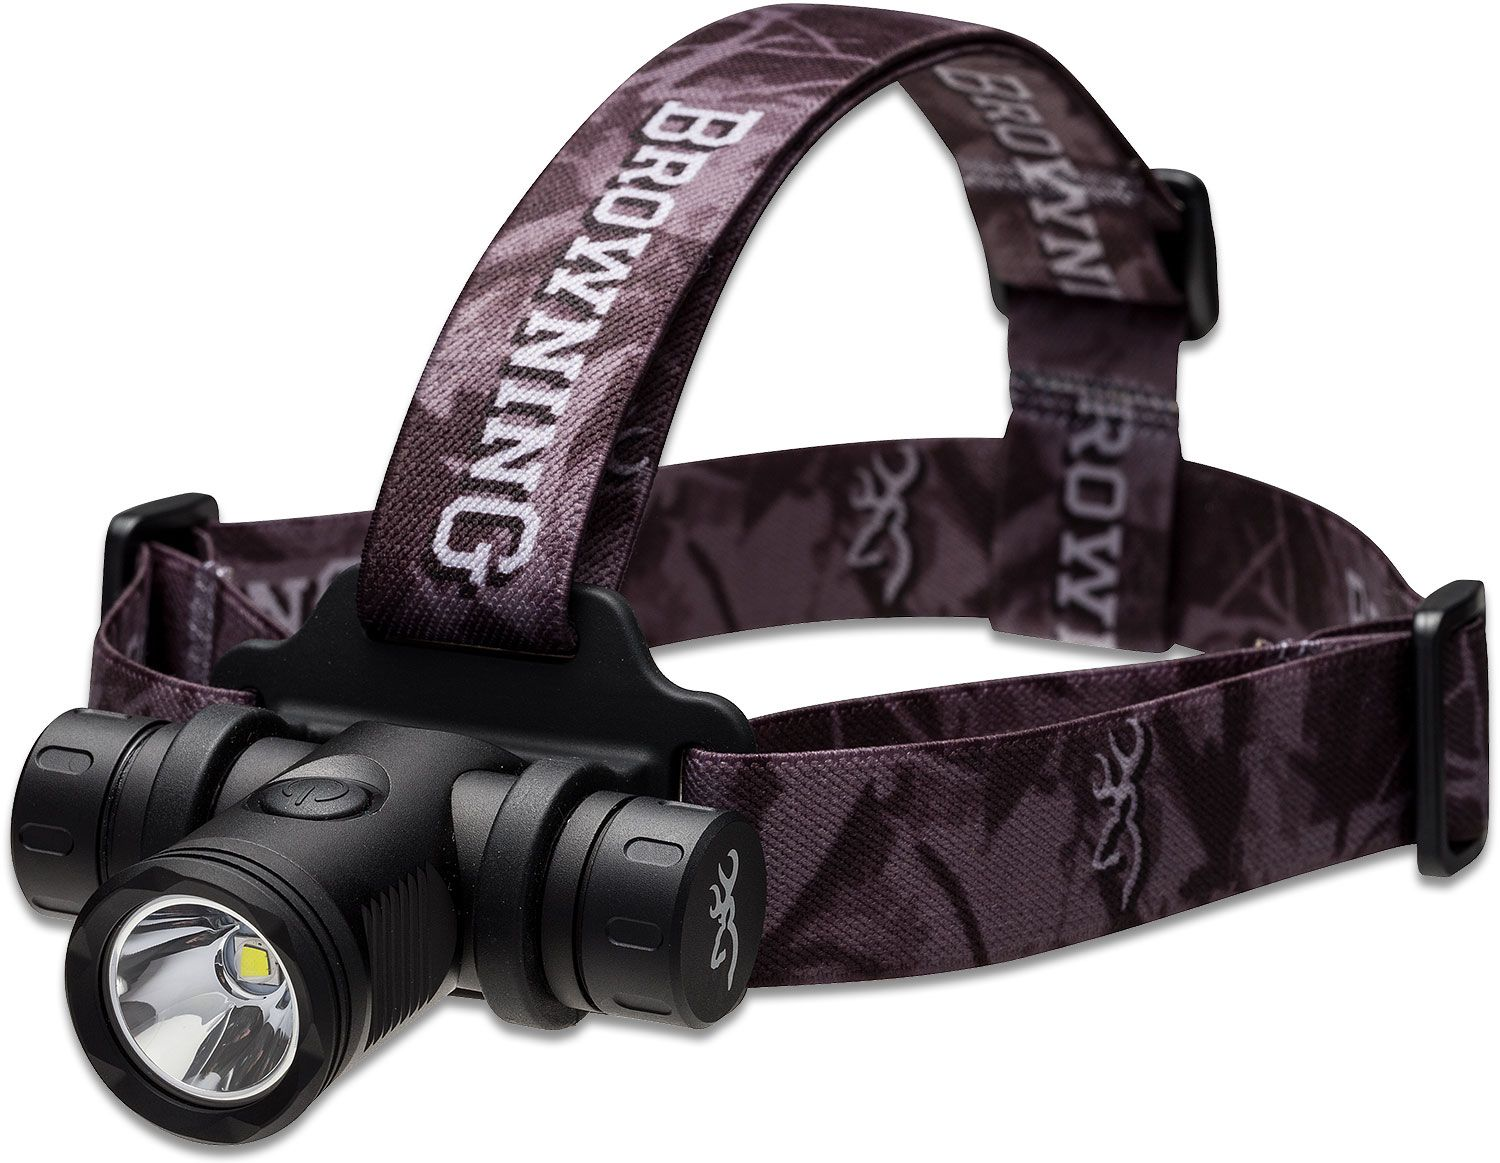 Browning Blackout 6V Rechargeable LED Headlamp, Black Aluminum Body with Camo Strap, 860 Max Lumens